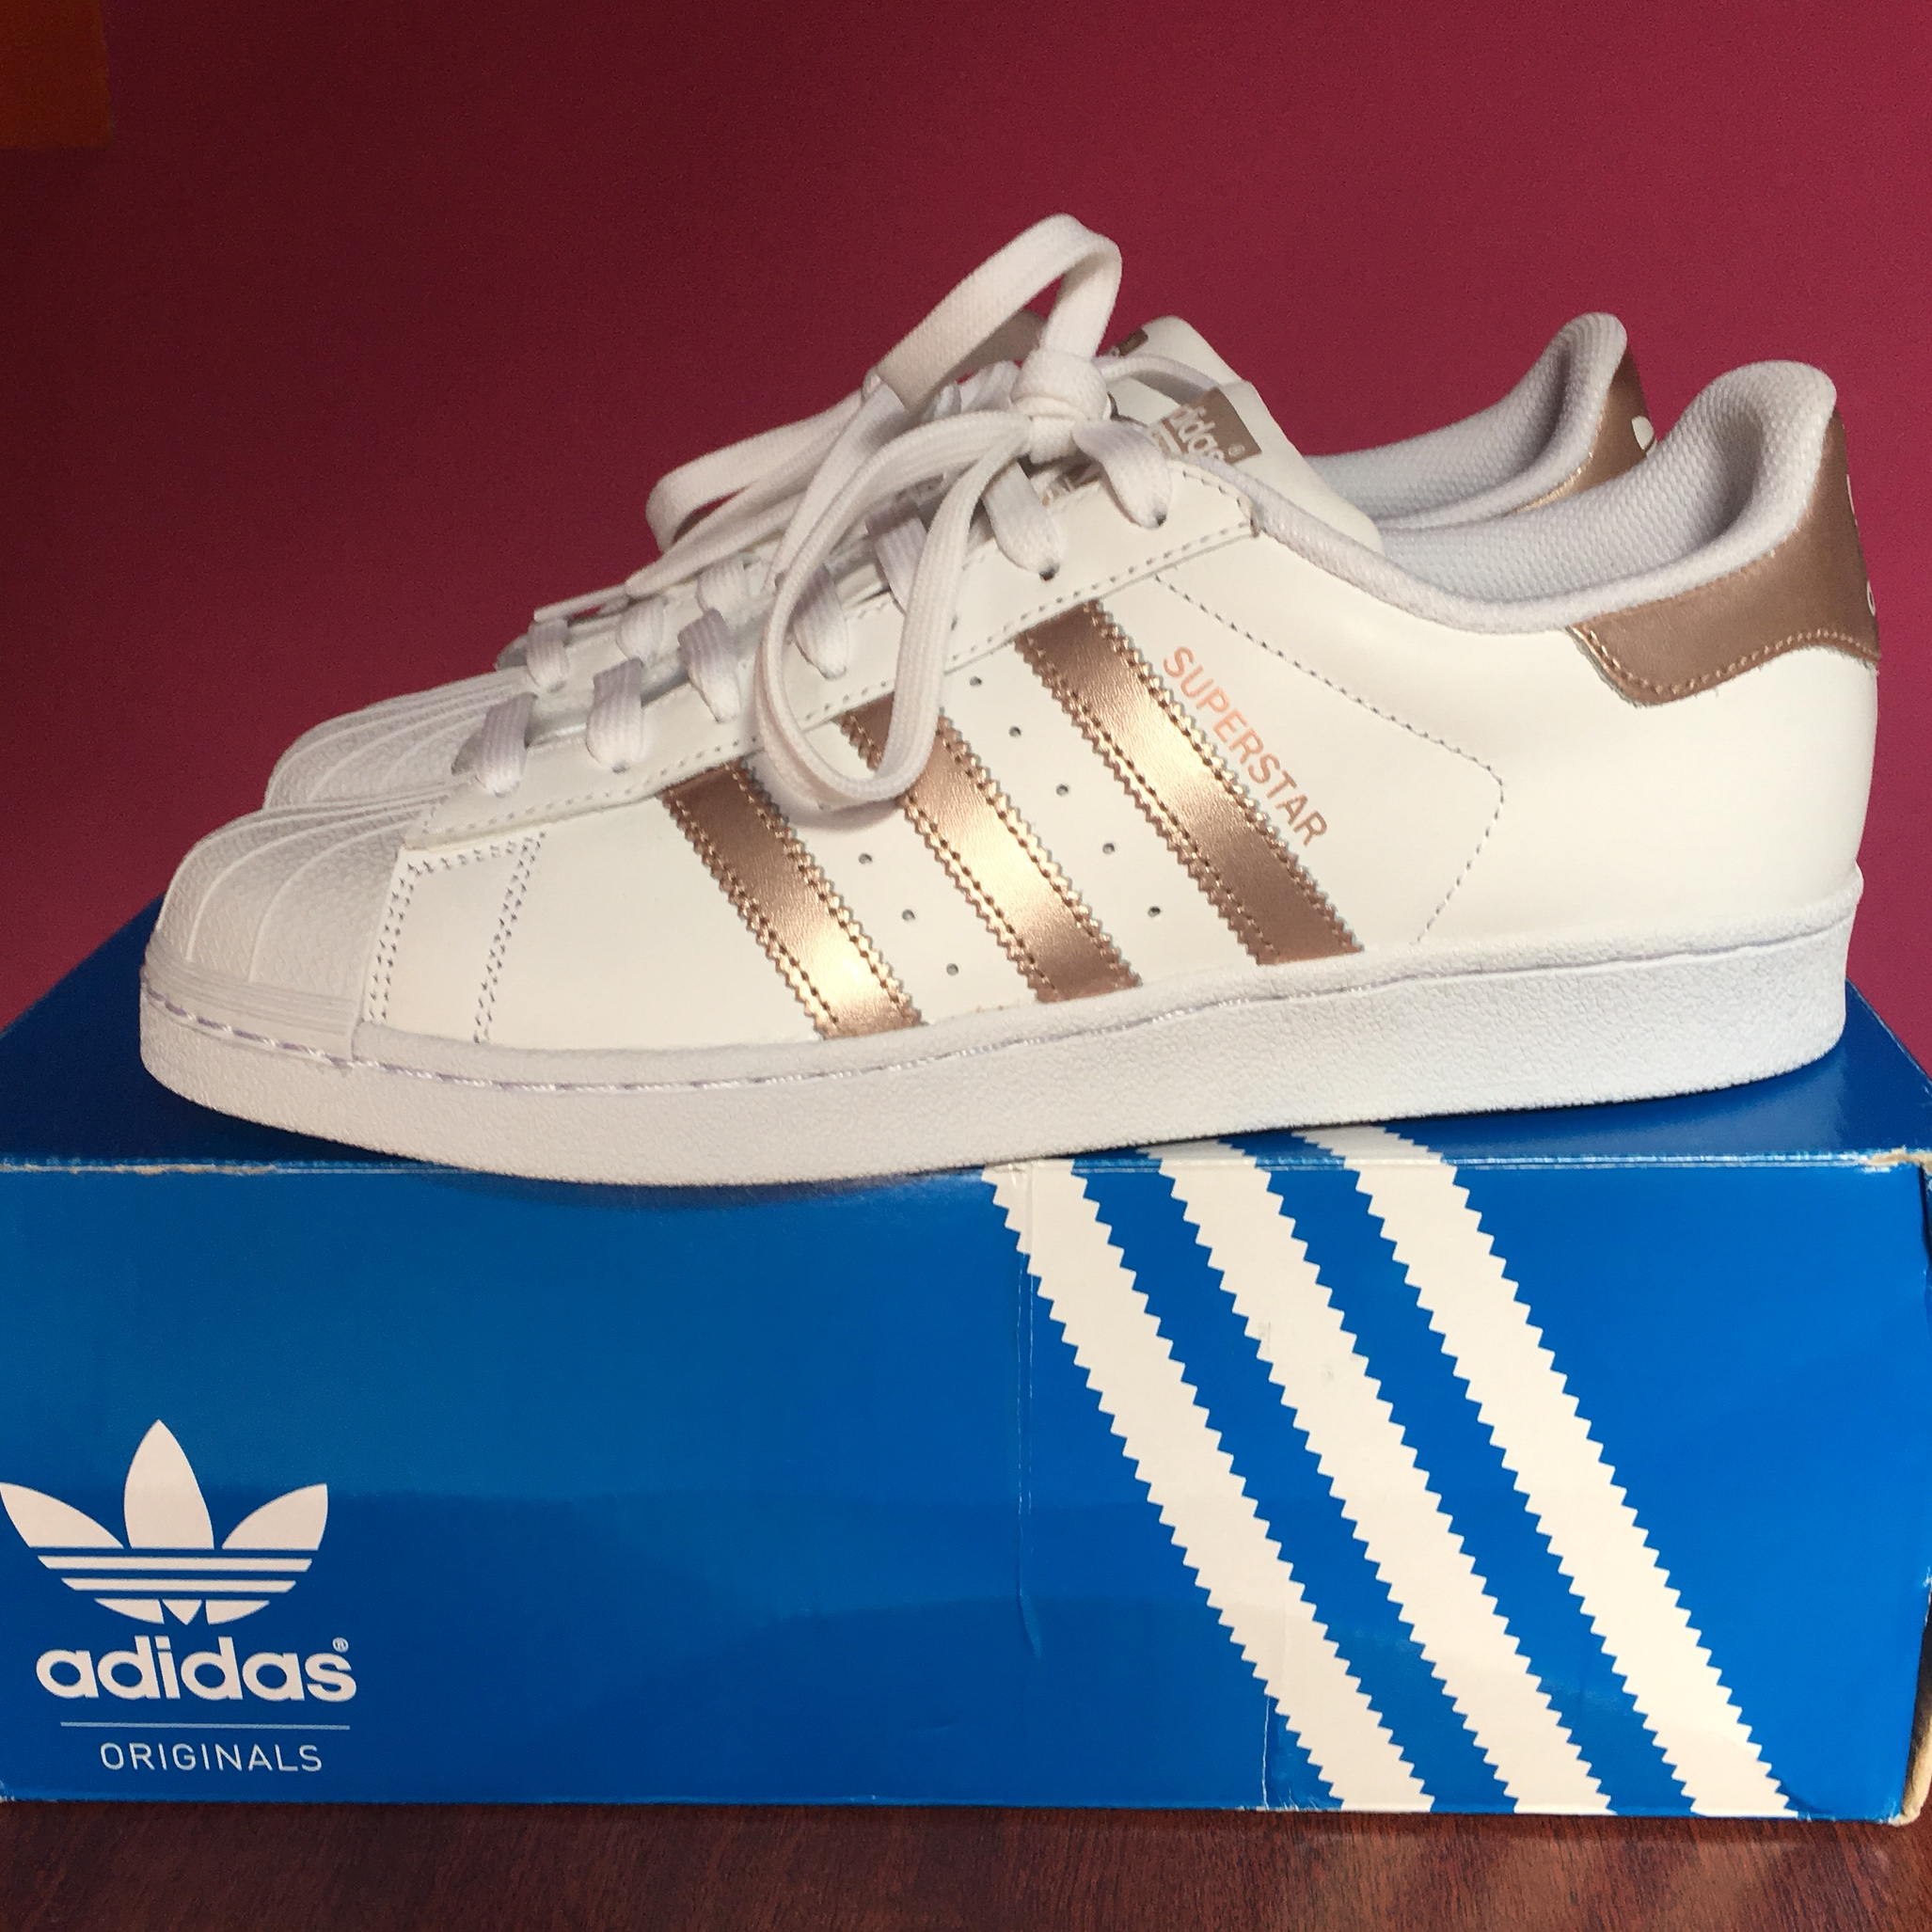 new concept 4ef99 16ea2 SIZE 7 - Adidas Superstar ROSE GOLD. Brand new with ...